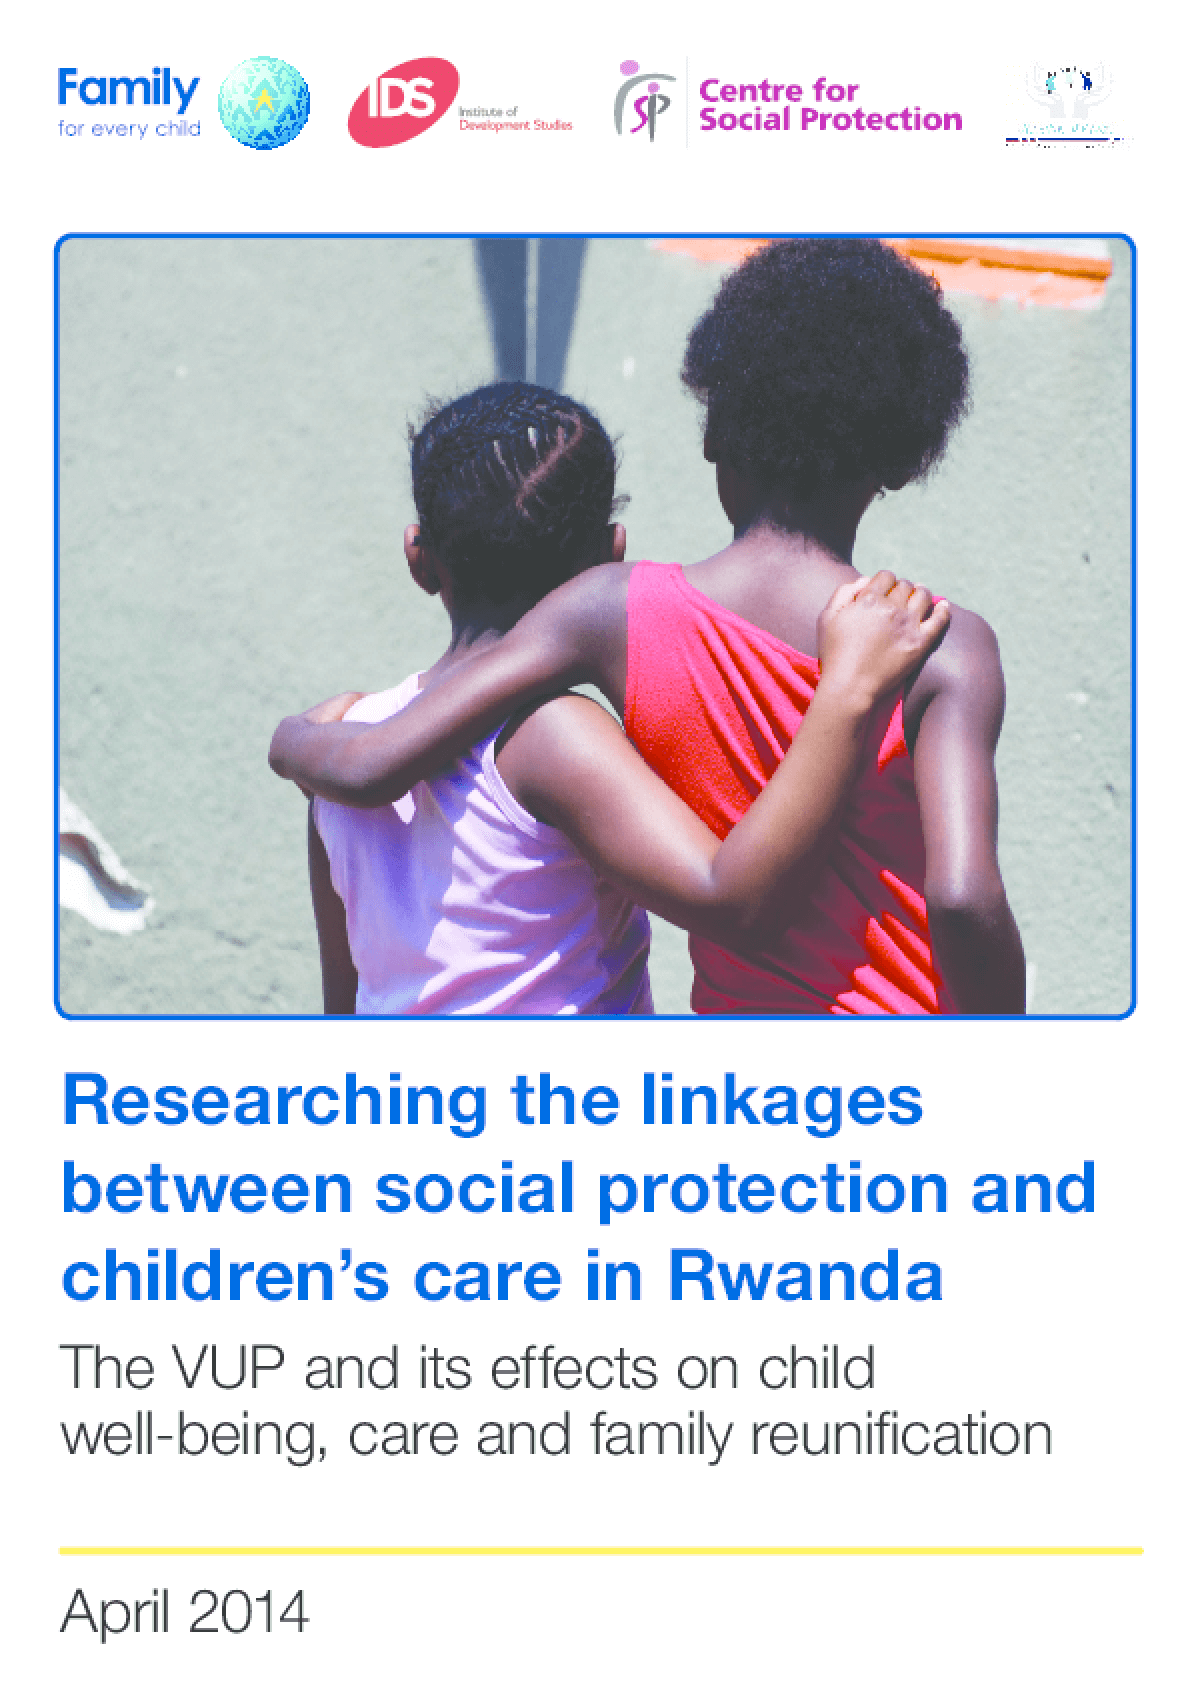 Researching the Linkages Between Social Protection and Children's Care in Rwanda: The VUP and its Effects on Child Well-Being, Care, and Family Reunification